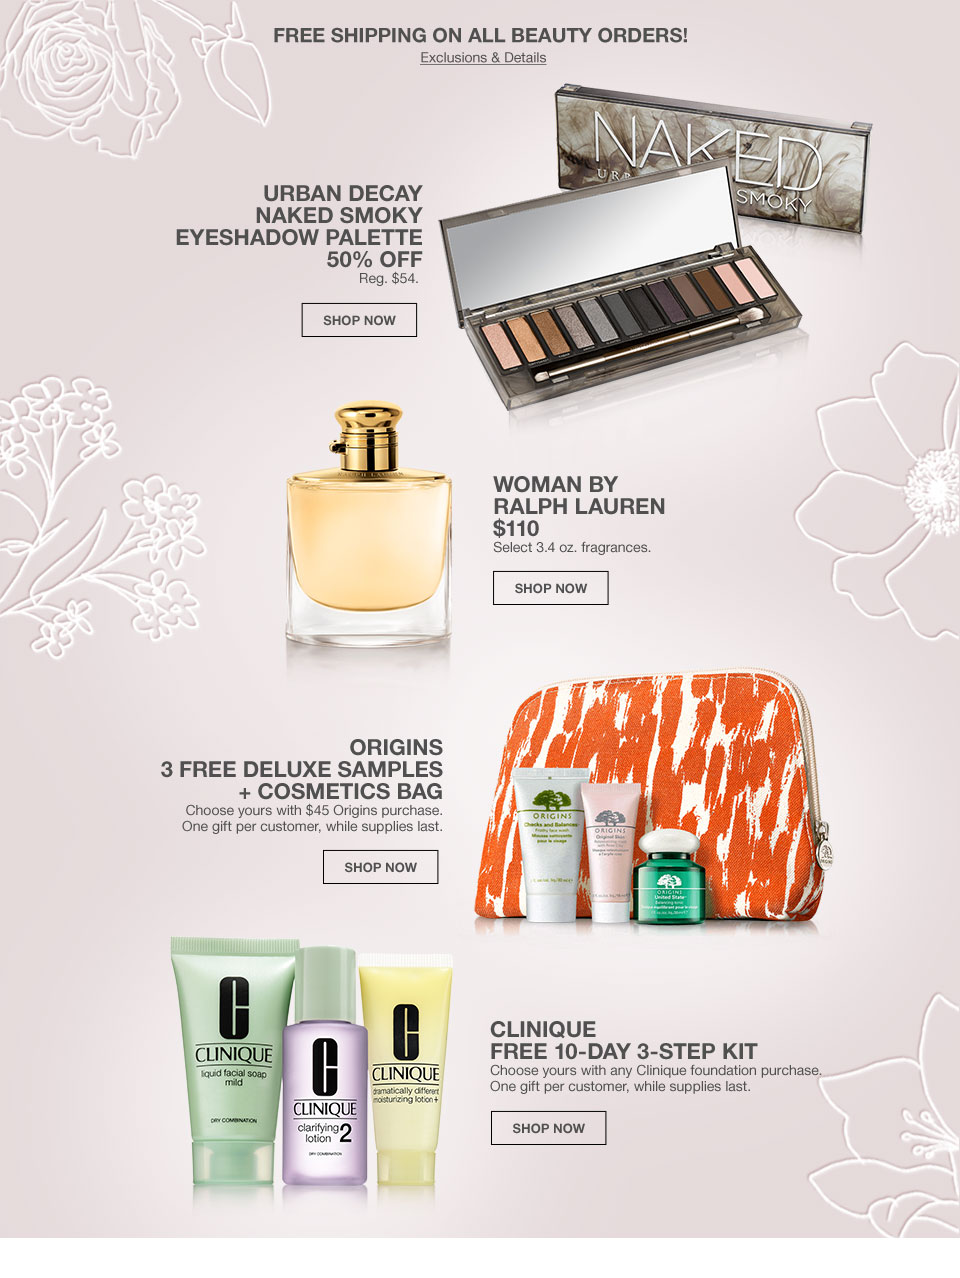 free shipping on all beauty orders! Urban Decay Naked Smoky Eyeshadow Palette 50 percent off. Regular 54 dollars. Woman by Ralph Lauren 110 dollars. Select 3.4 oz fragrances. Origins 3 free deluxe samples plus cosmetics bag. Choose yours with 45 dollar Origins purchase. One gift per customer, while supplies last. Clinique Free 10 day 3 step kit. Choose yours with any Clinique foundation purchase. One gift per customer, while supplies last.